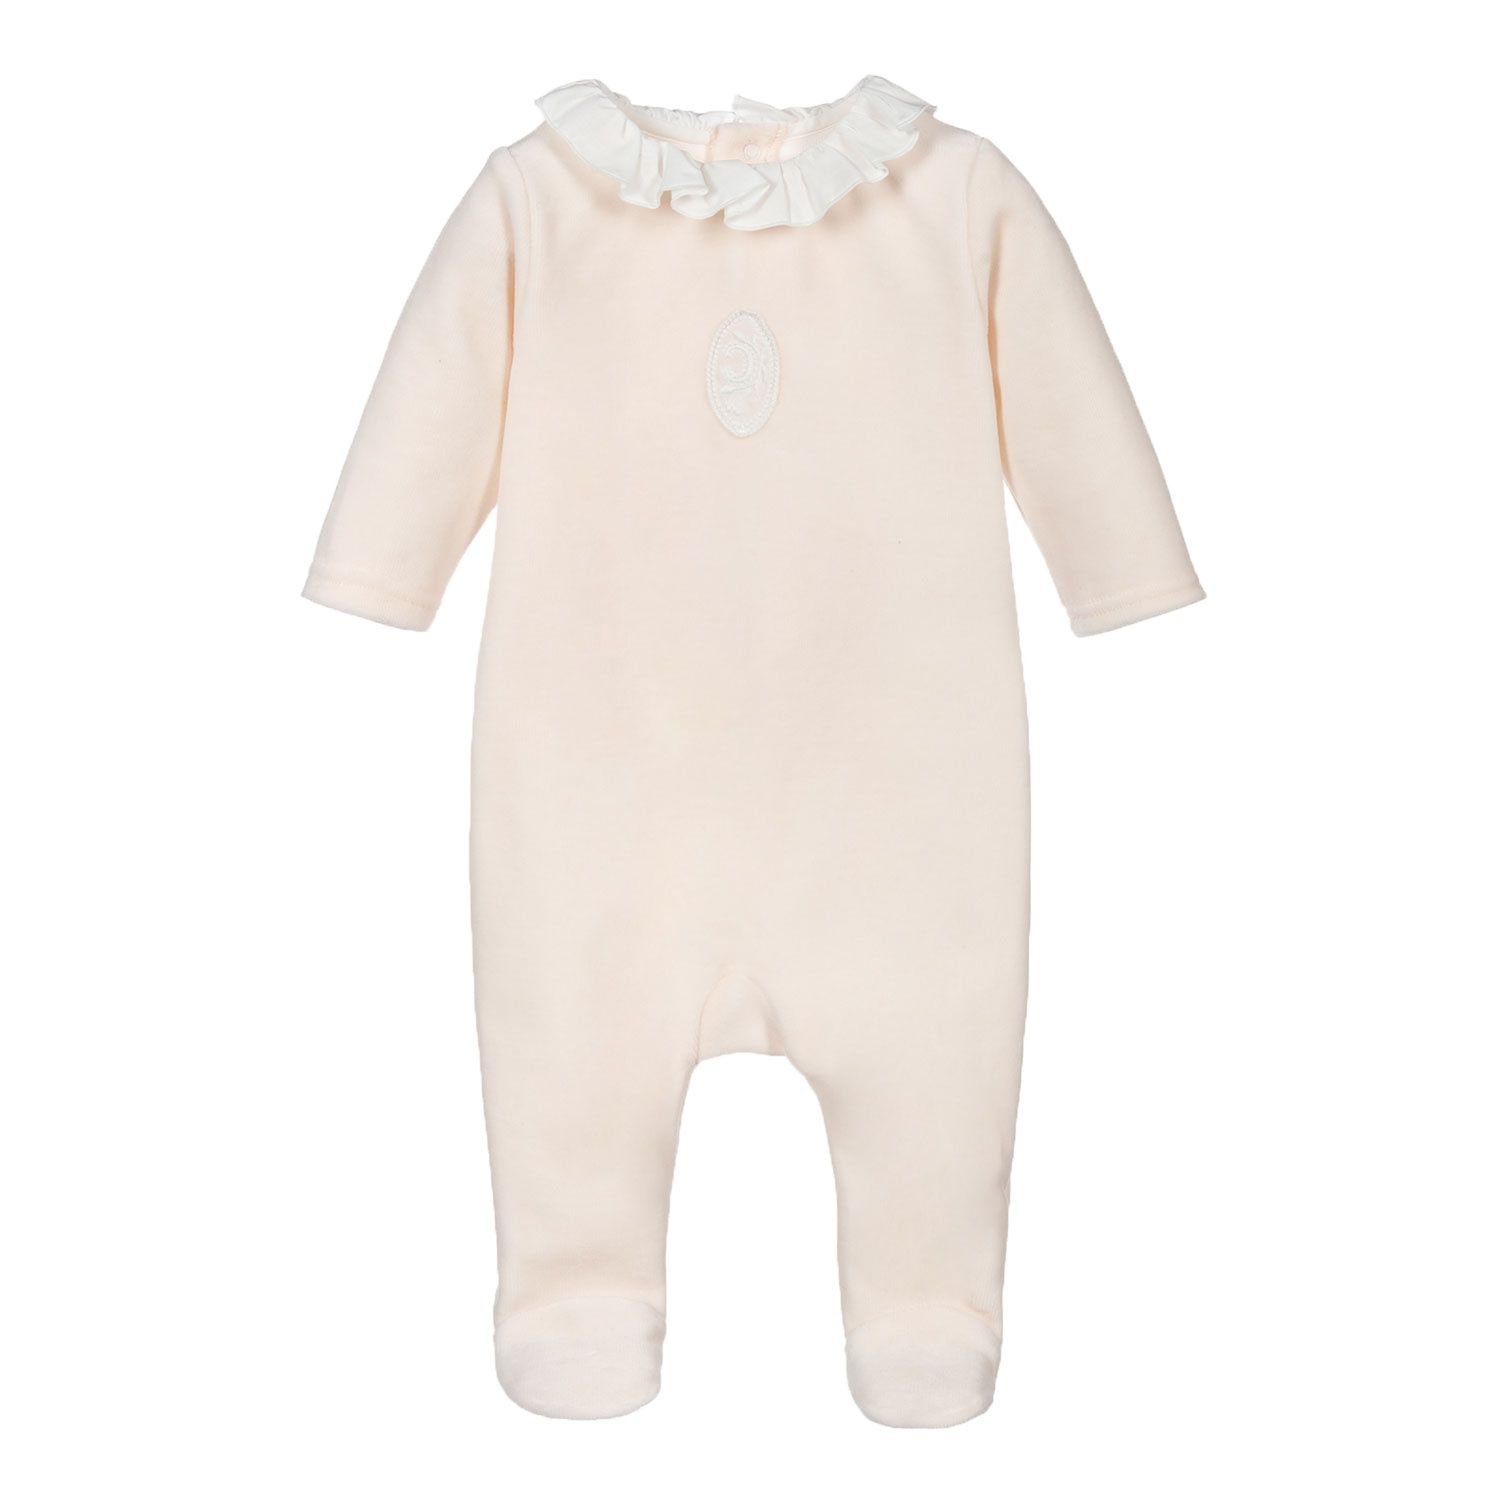 Picture of Chloé C97274 baby playsuit light pink